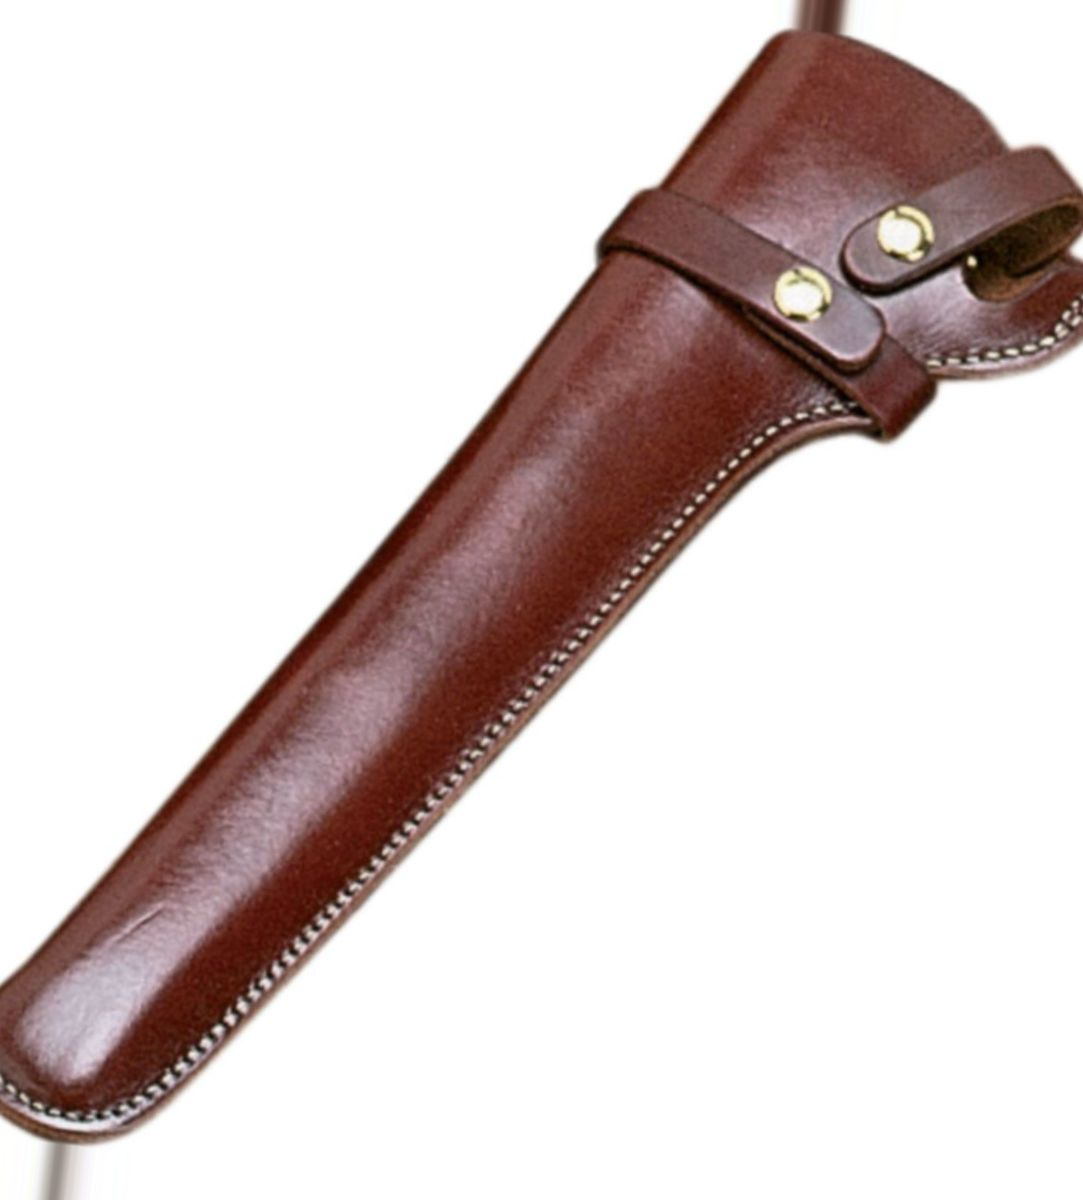 Triple K Leather Holster for Army Buffalo Black Powder Revolvers